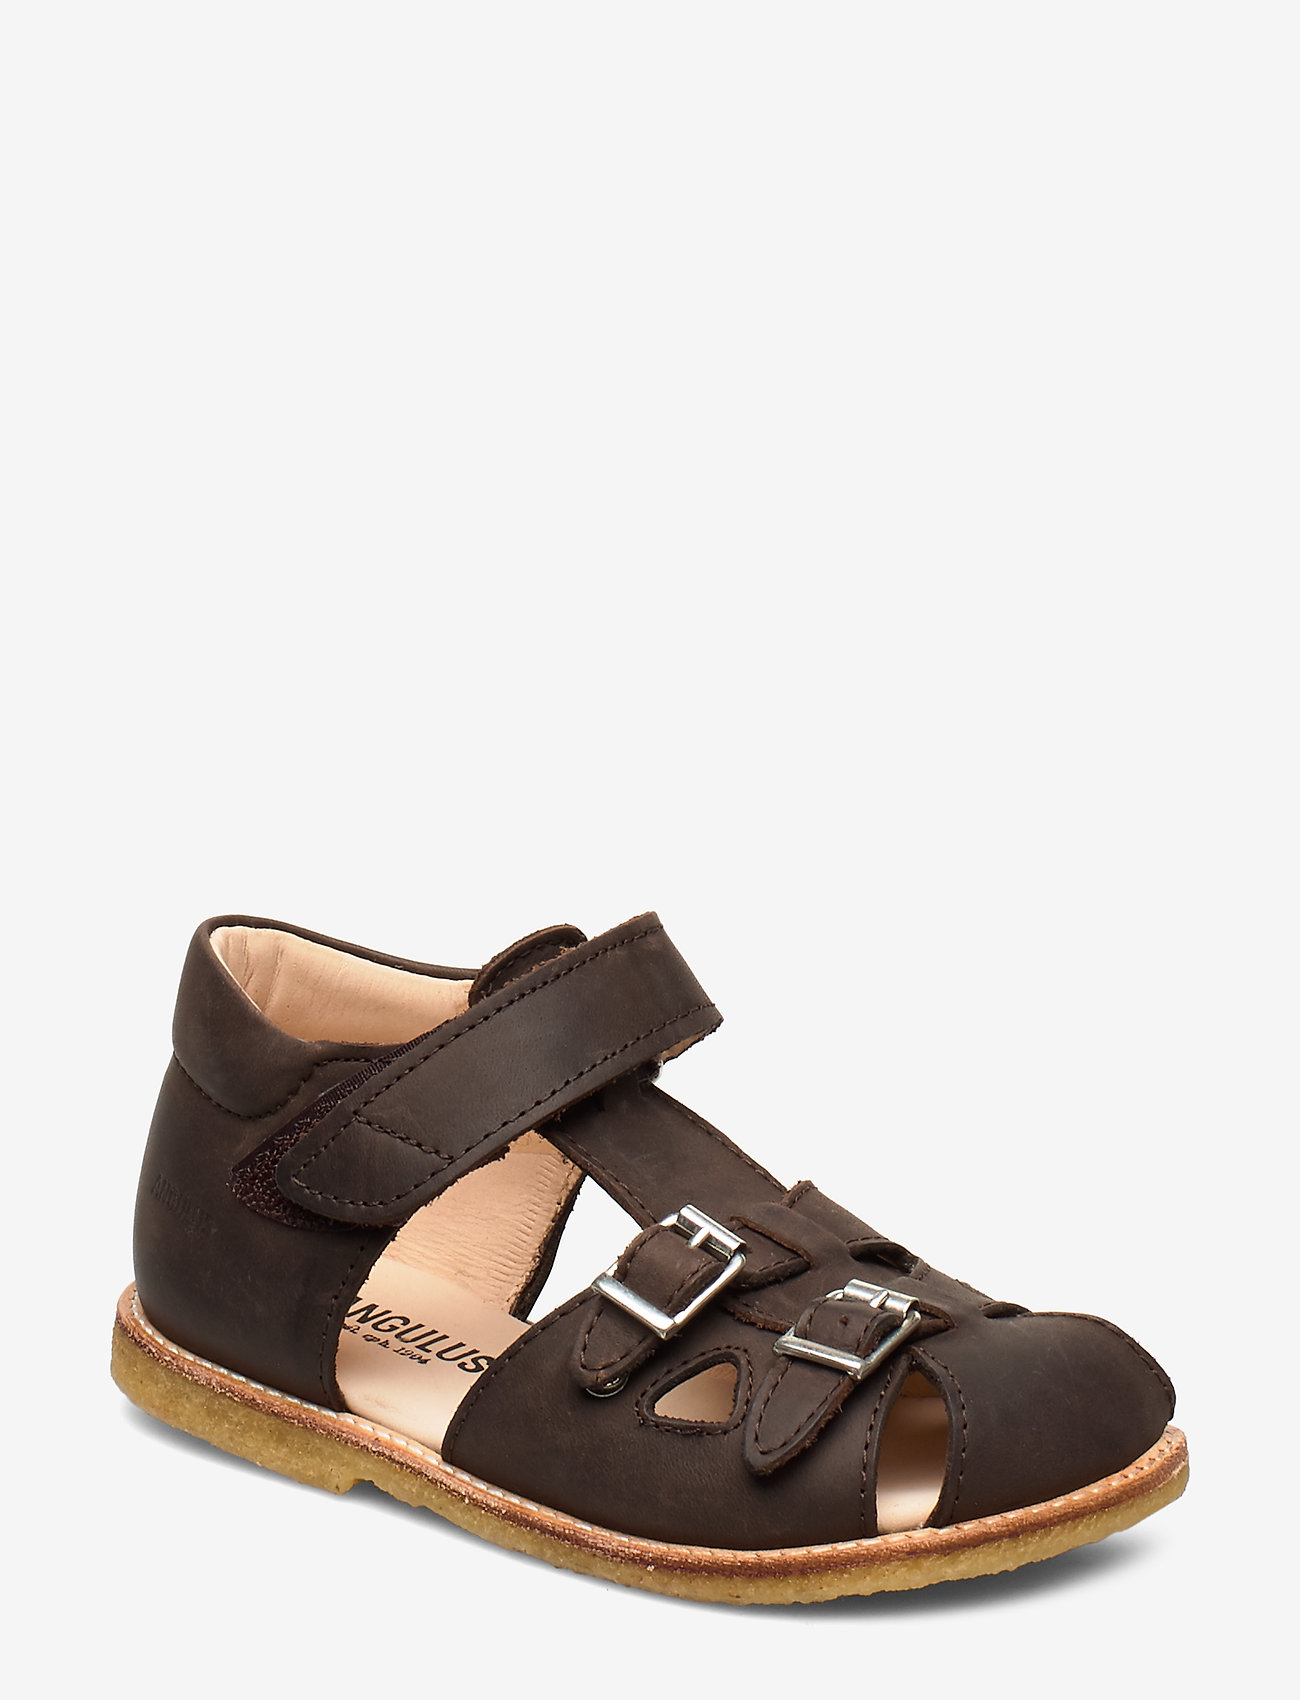 ANGULUS - Sandals - flat - sandals - 1660 dark brown